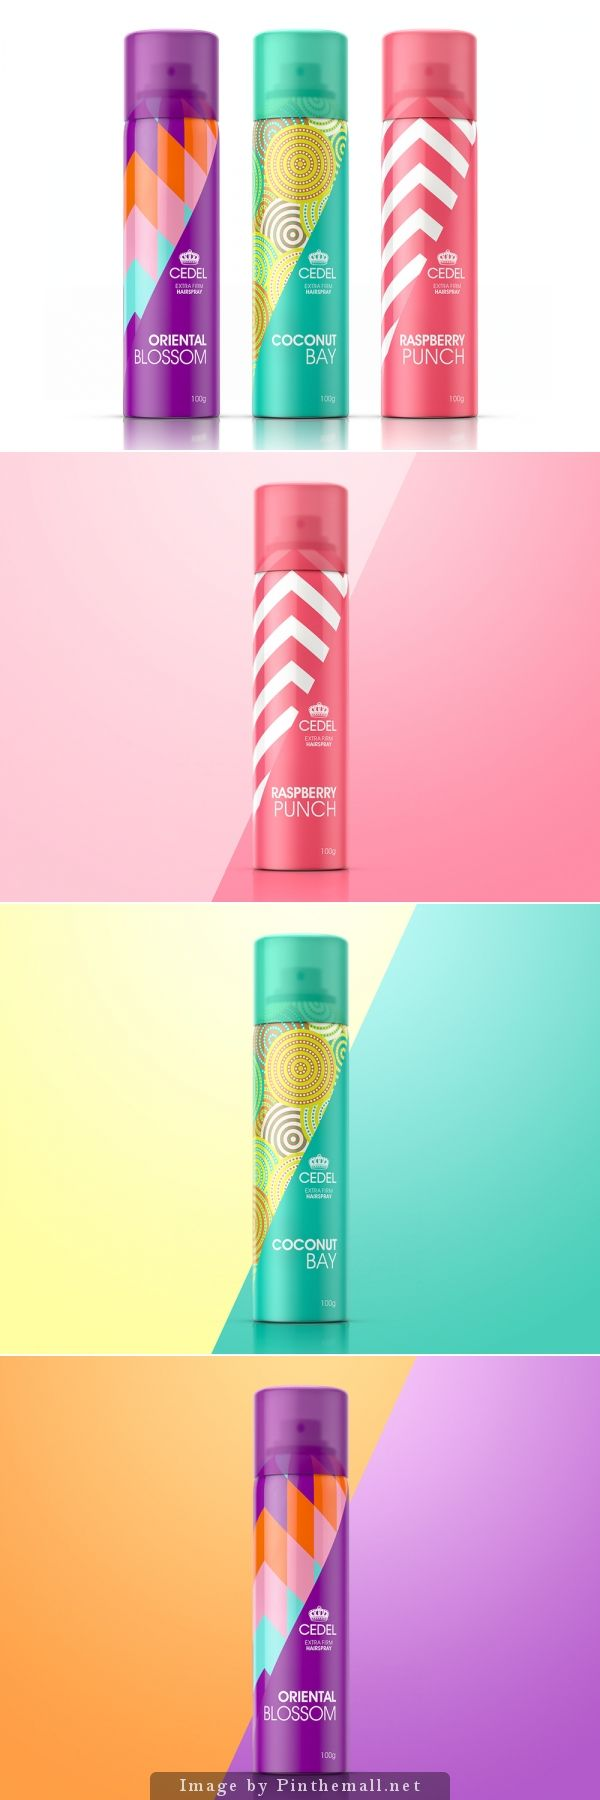 Cedel Scented Hairspray by Glen Crawforth #packaging #design